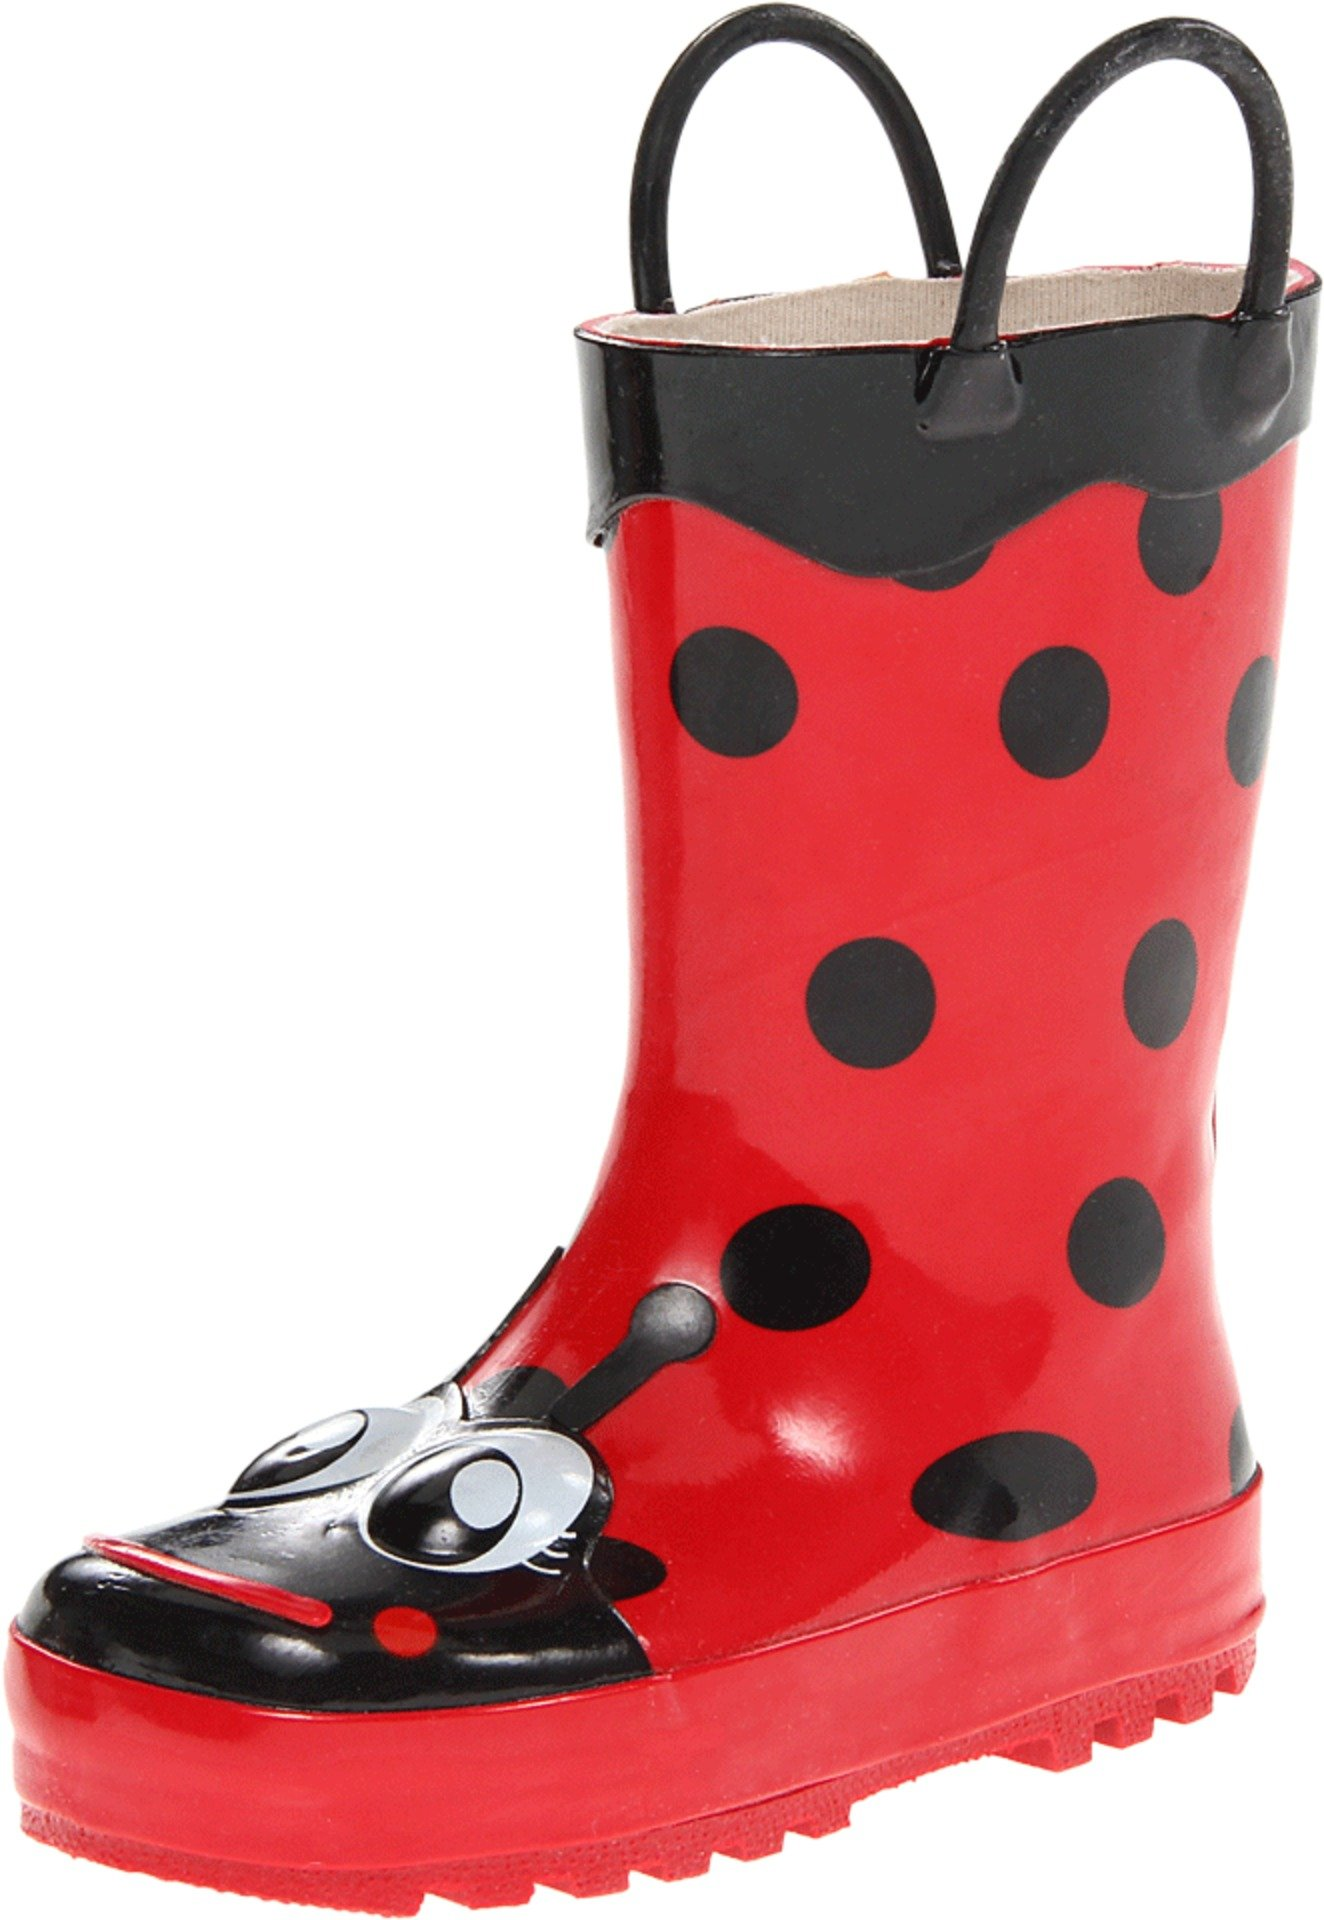 Western Chief Girls Waterproof Printed Rain Boot with Easy Pull on Handles, Lucy the Ladybug, 11 M US Little Kid